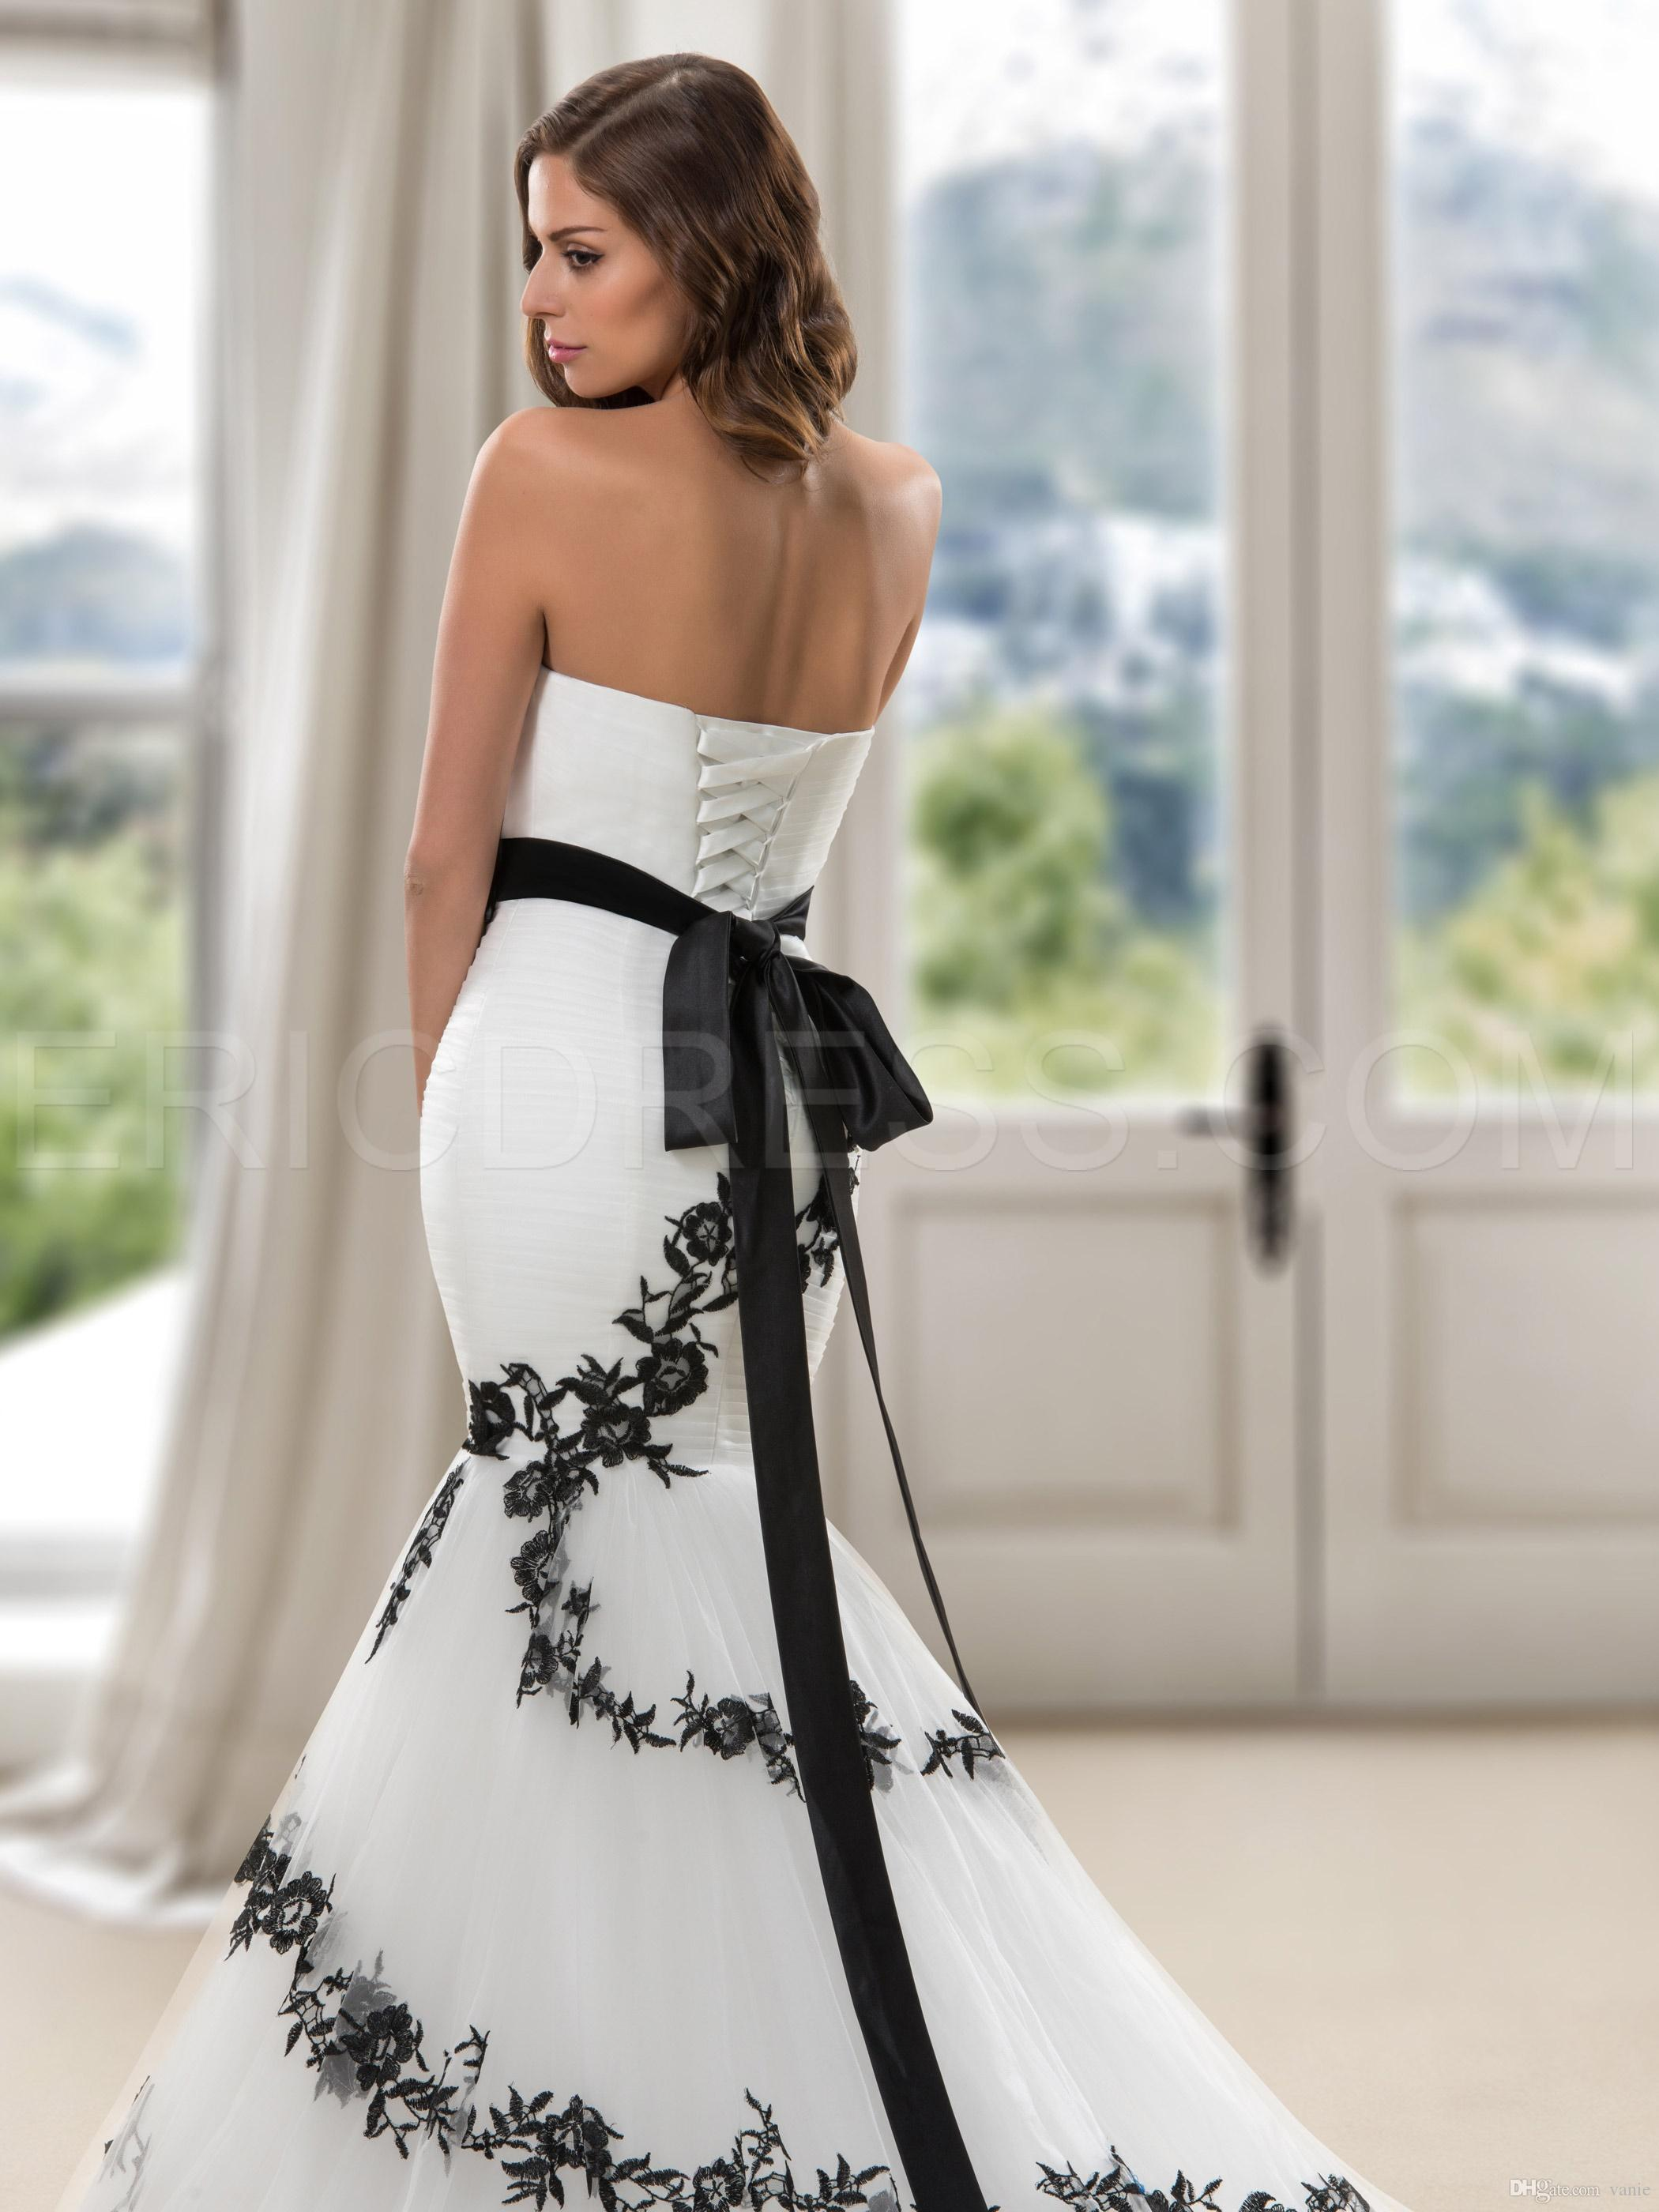 Nwd12 2018 Fashionable Of Bride Black Rose Flowers Mermaid Wedding ...